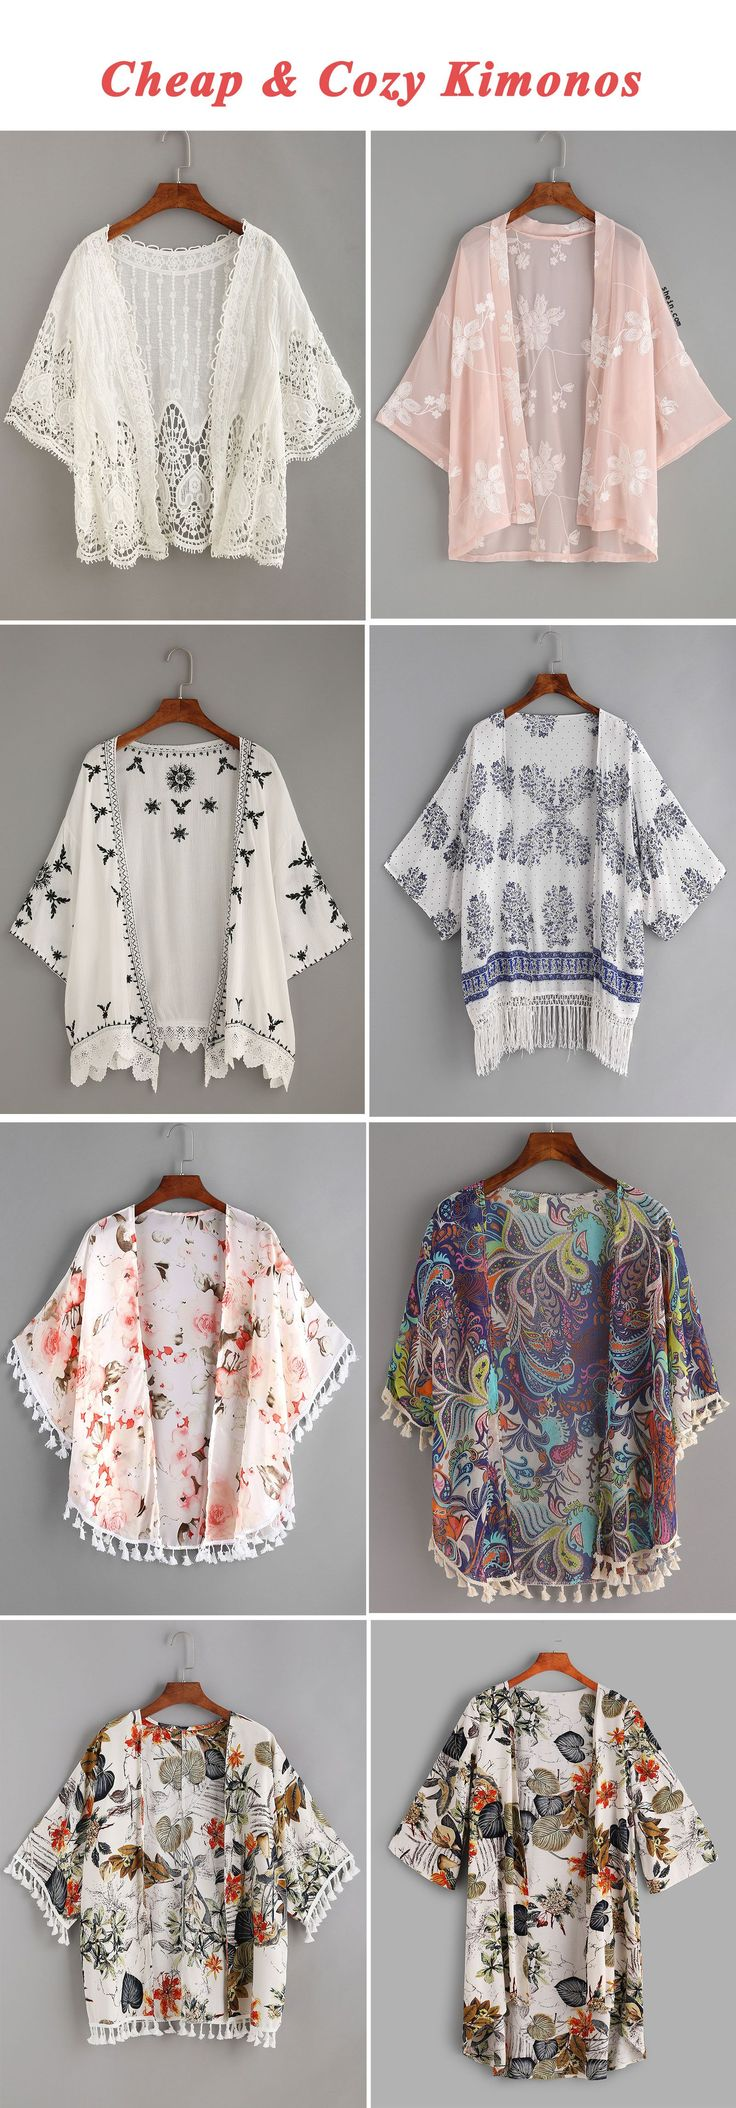 Cheap & cozy kimonos